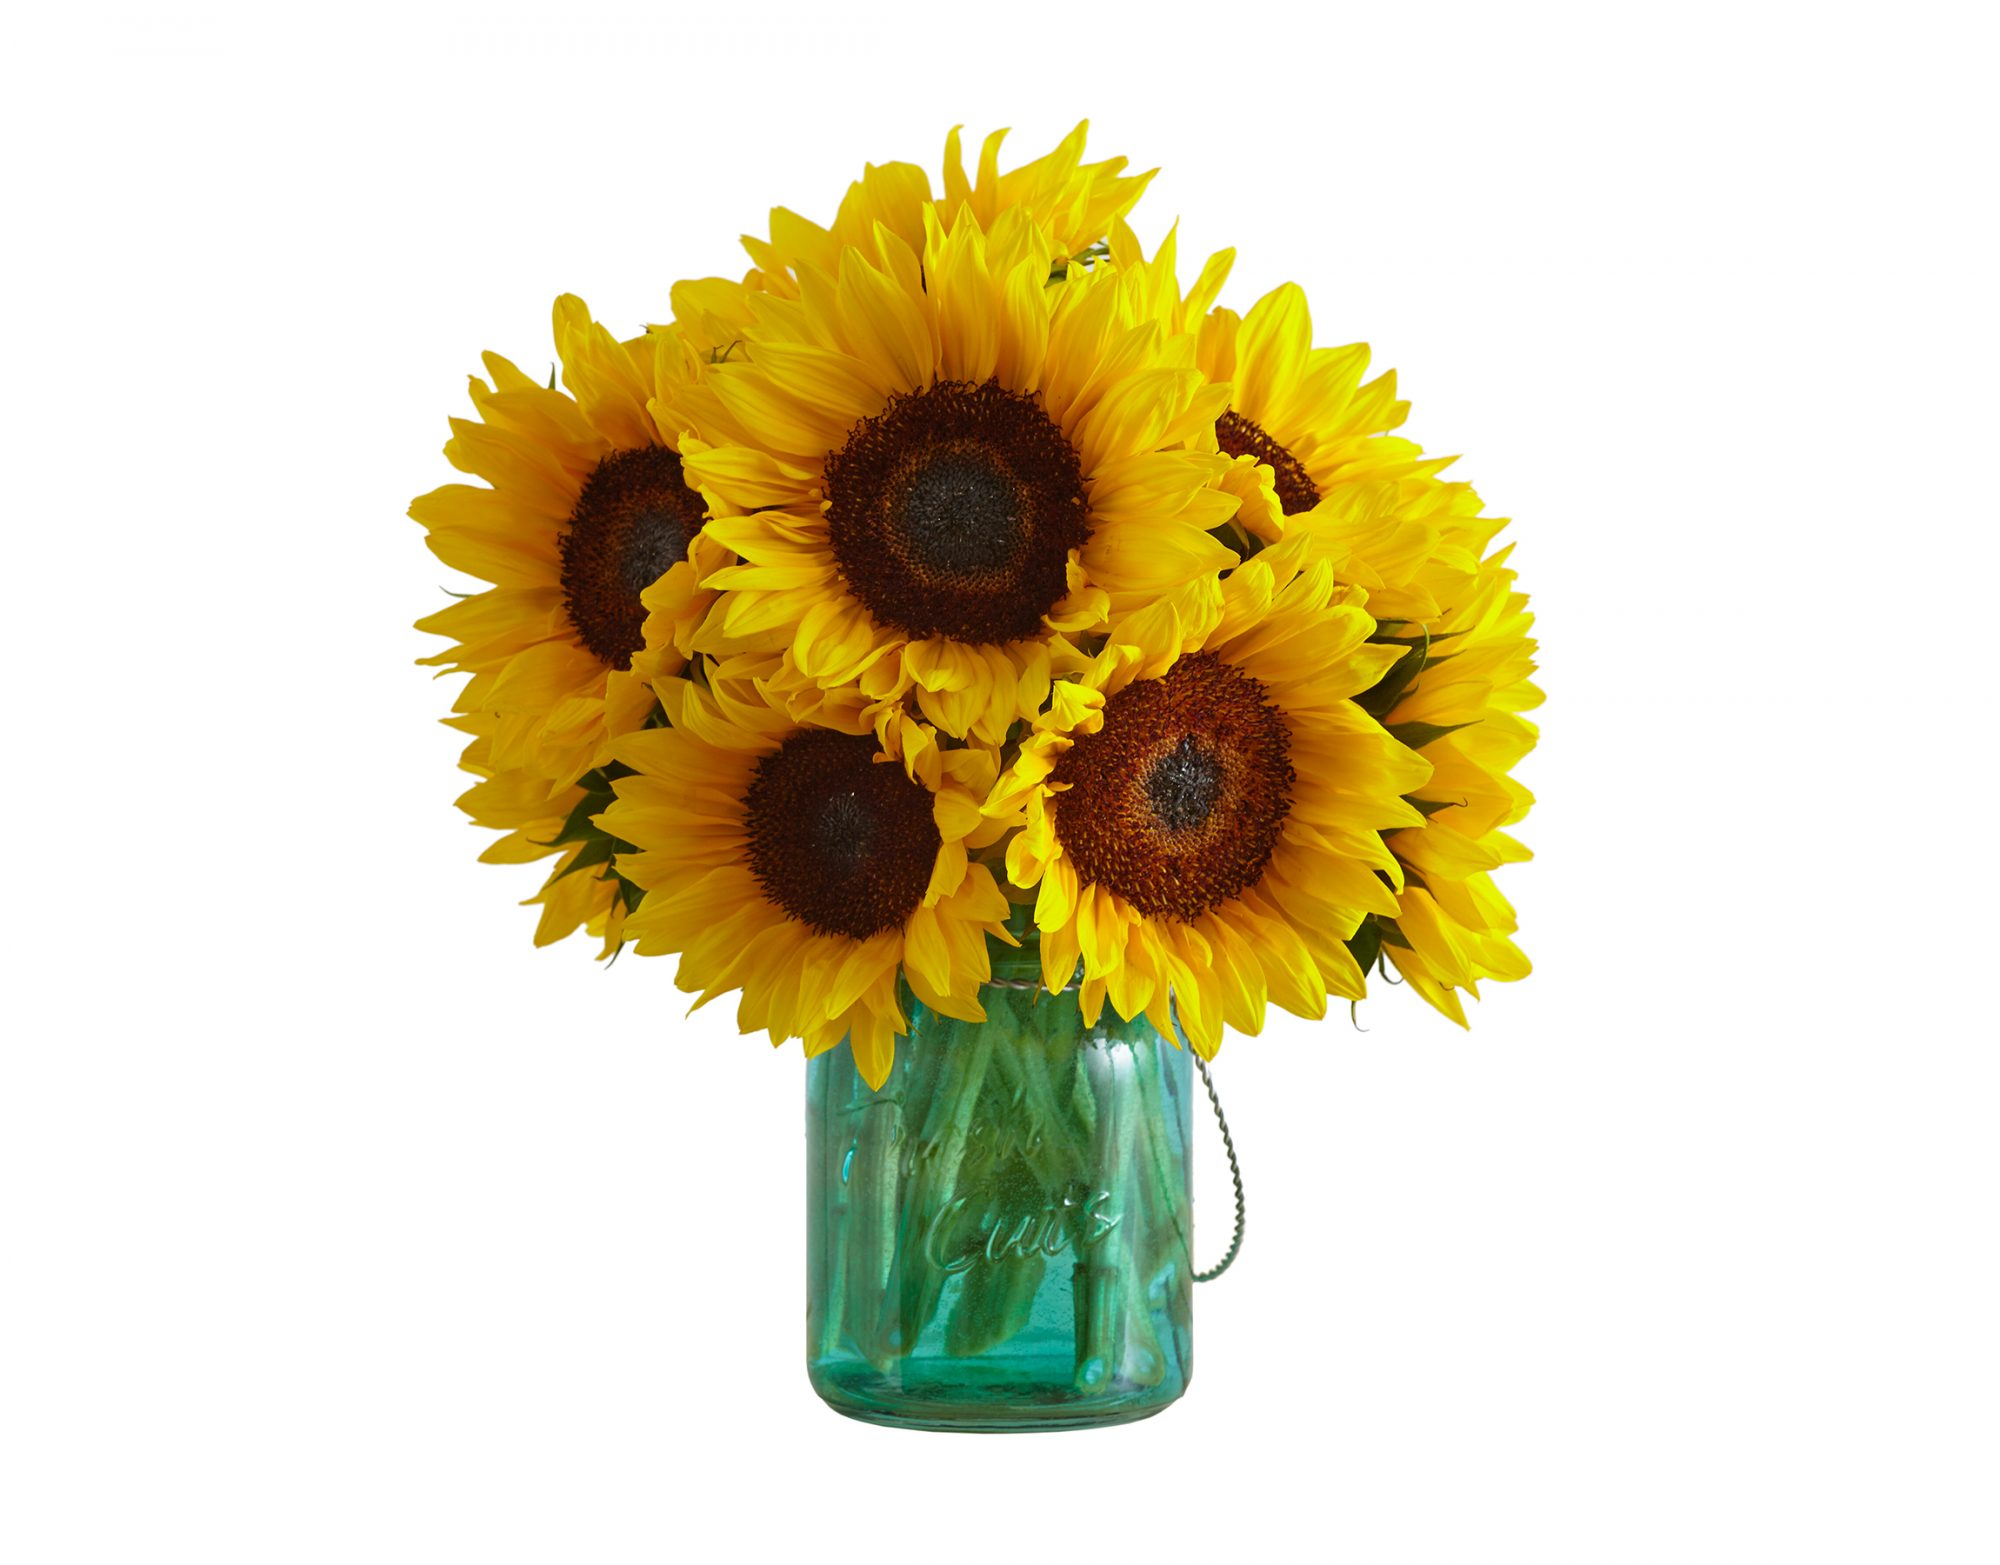 Sunflowers by Real Simple